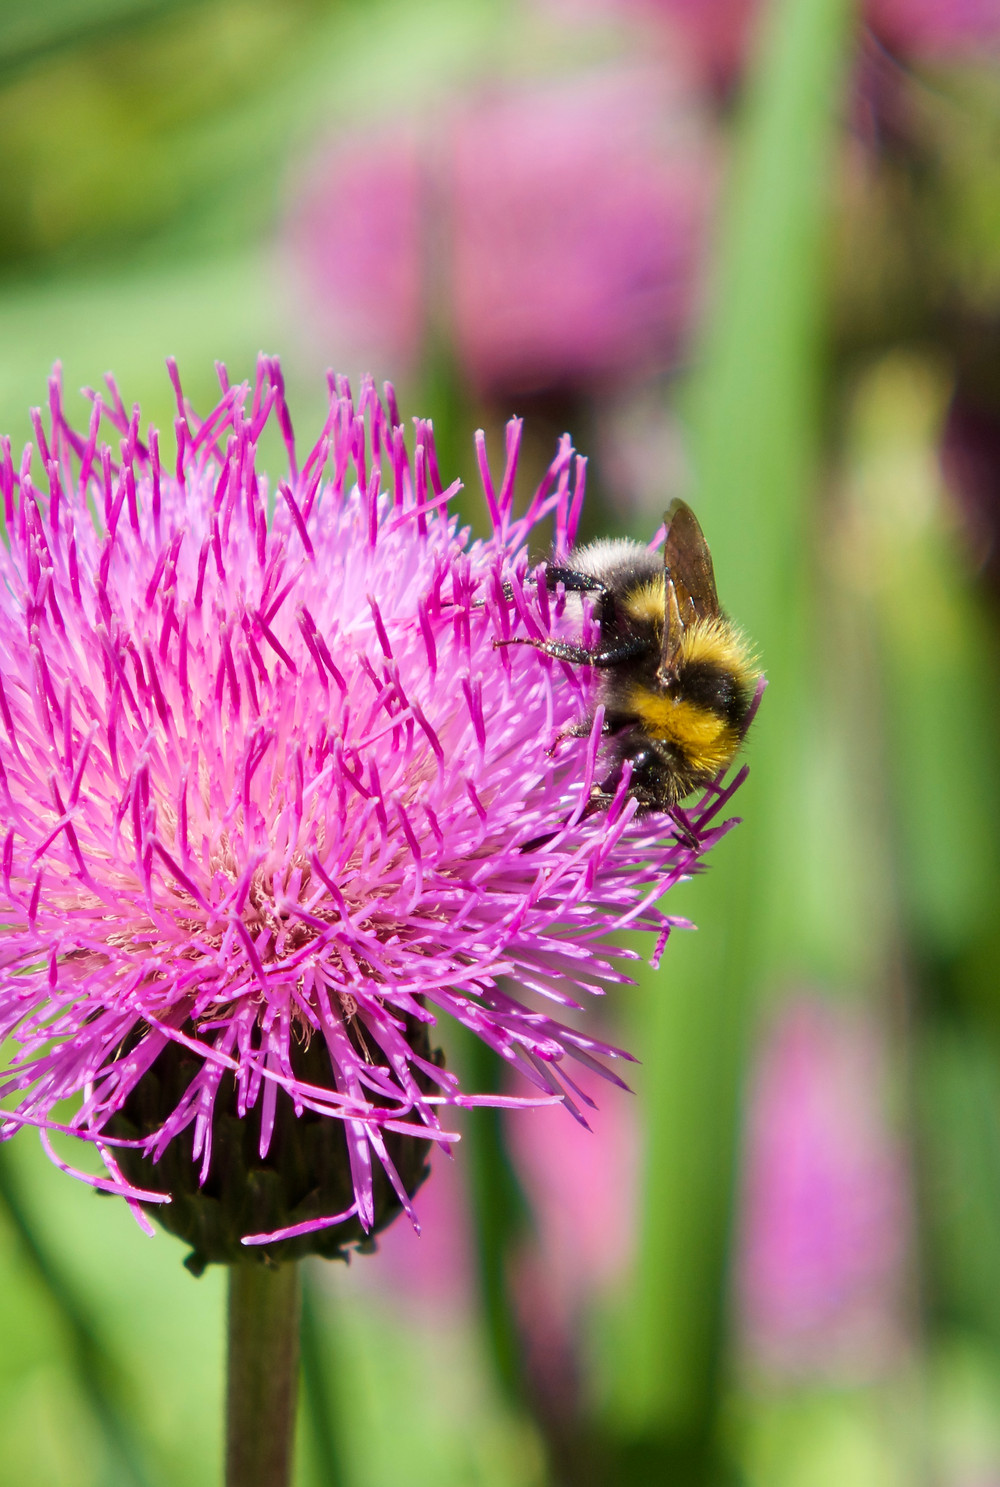 A bright pink thistle, Cirsium heterophyllum, with a white tailed bumblebee